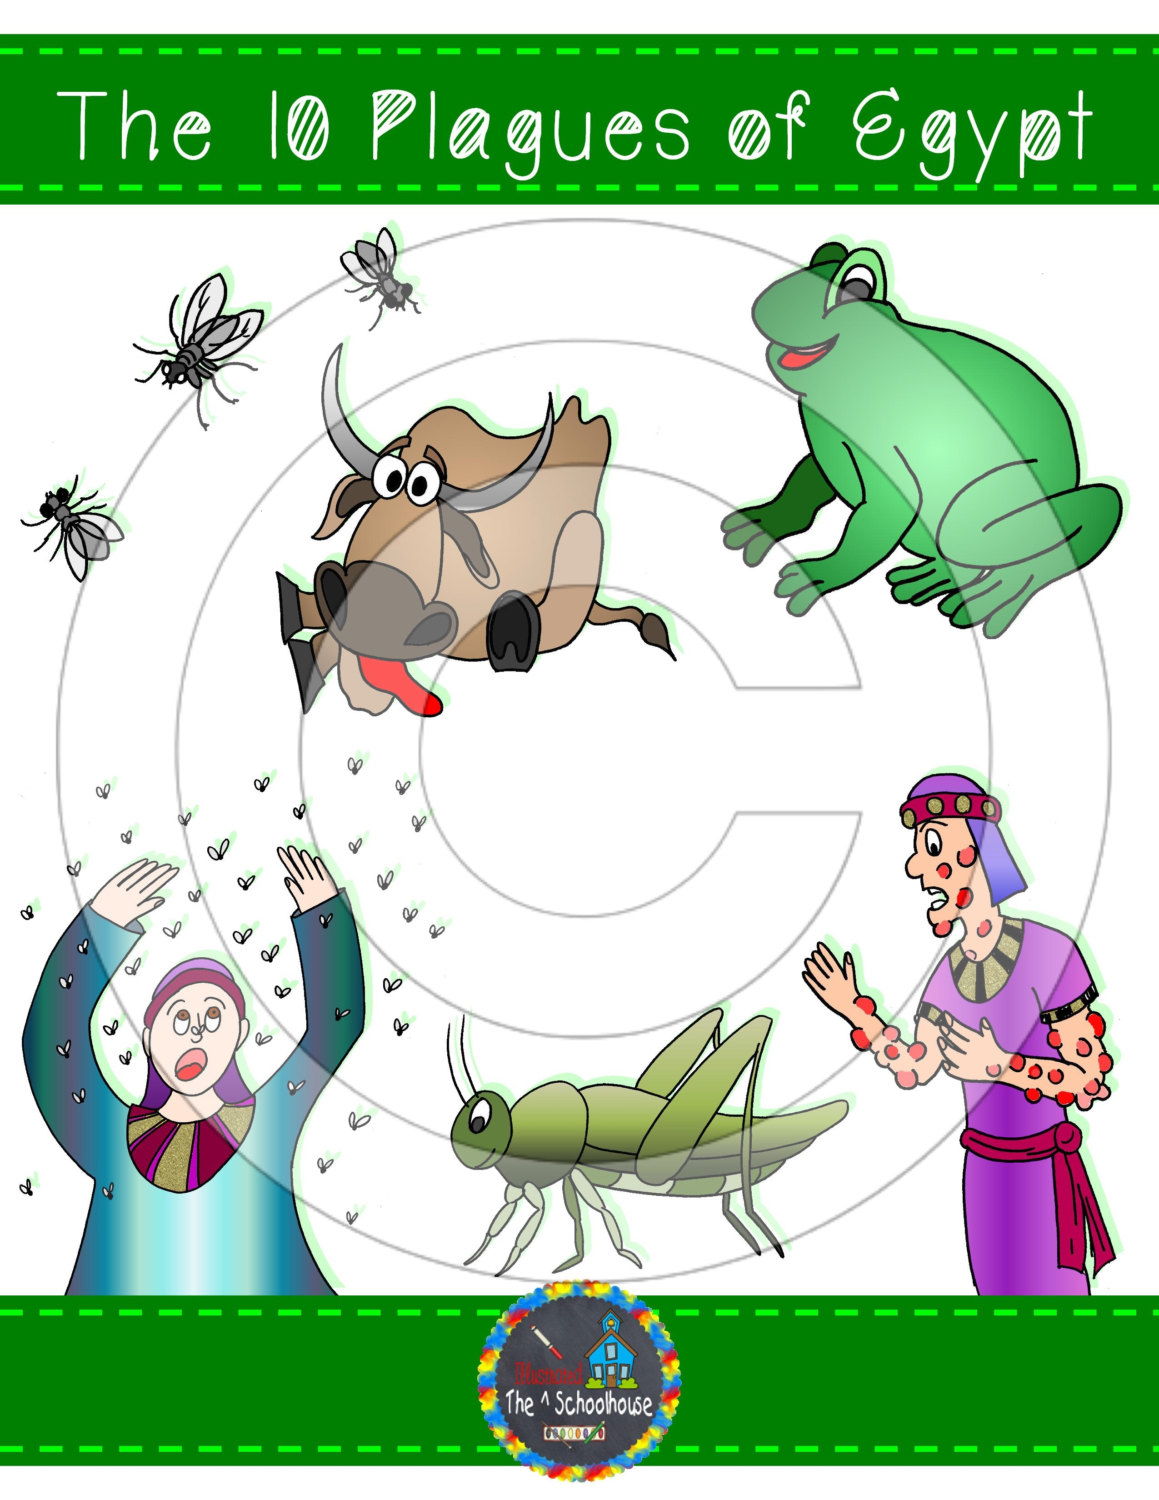 The 10 Plagues of Egypt Clipart in Color and Black & White.